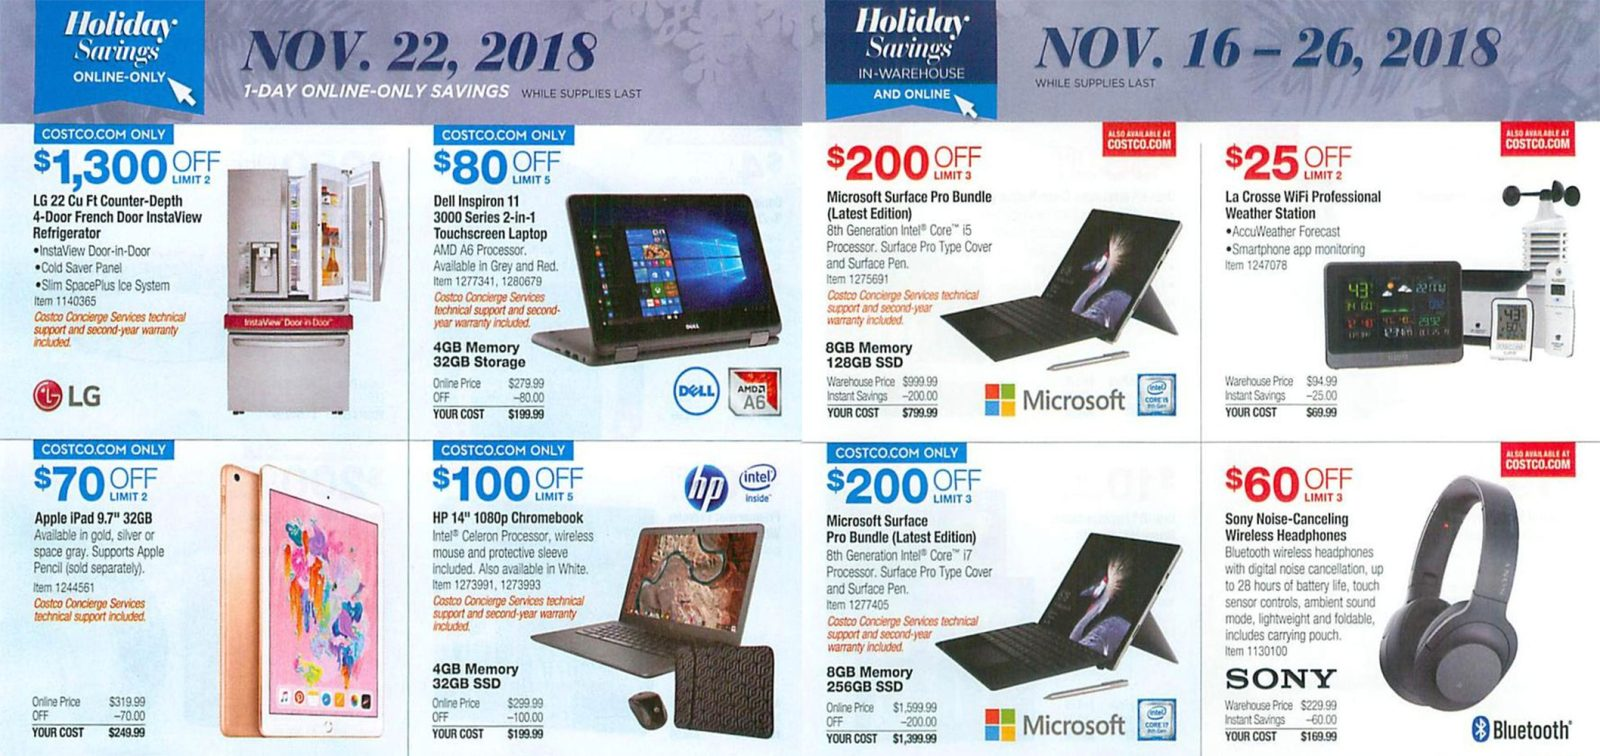 Costco Black Friday ad reveals first look at this year's deals